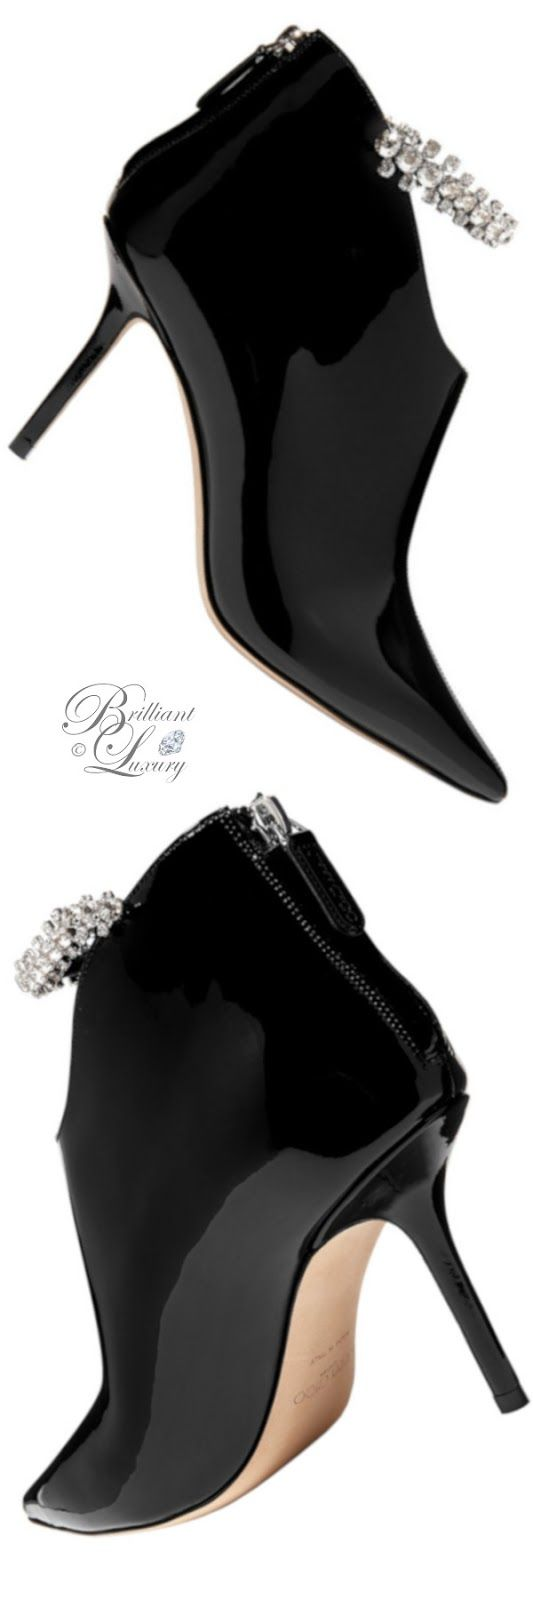 Womens Leather Pointy Toe Crystal Wedge High Heels Zip Ankle Boots Shoes HOT D7